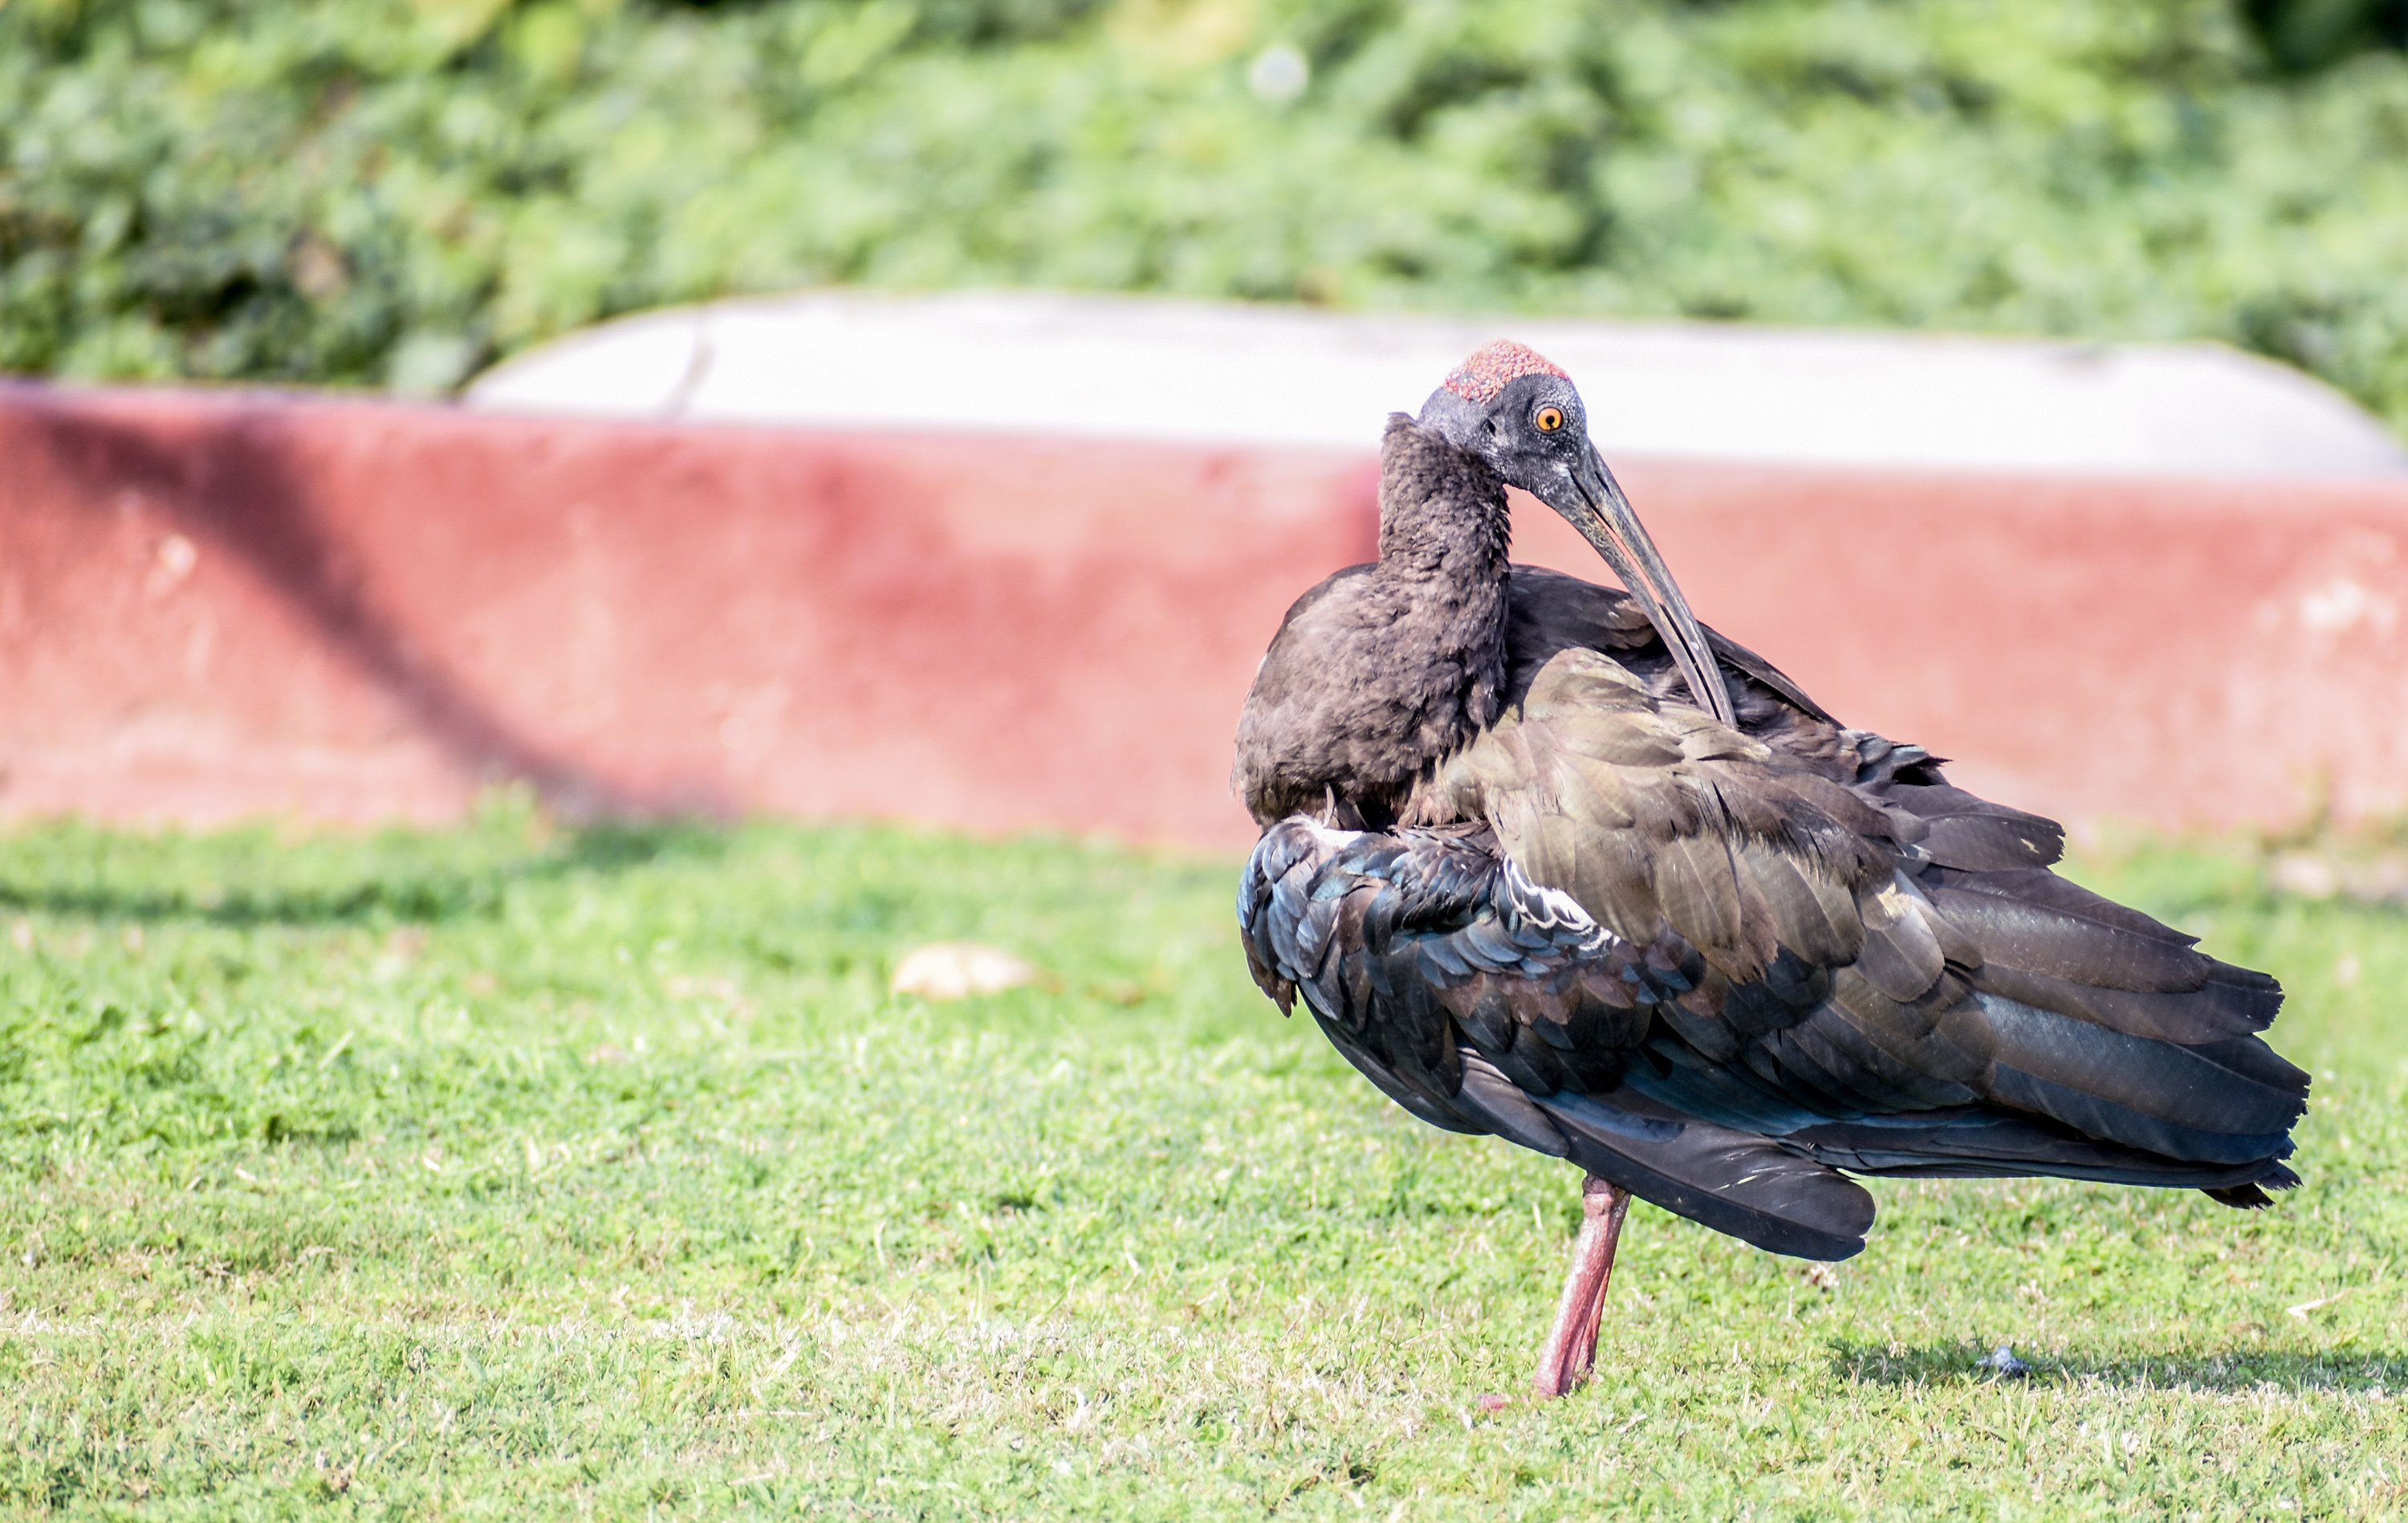 A giant ibis grooming itself